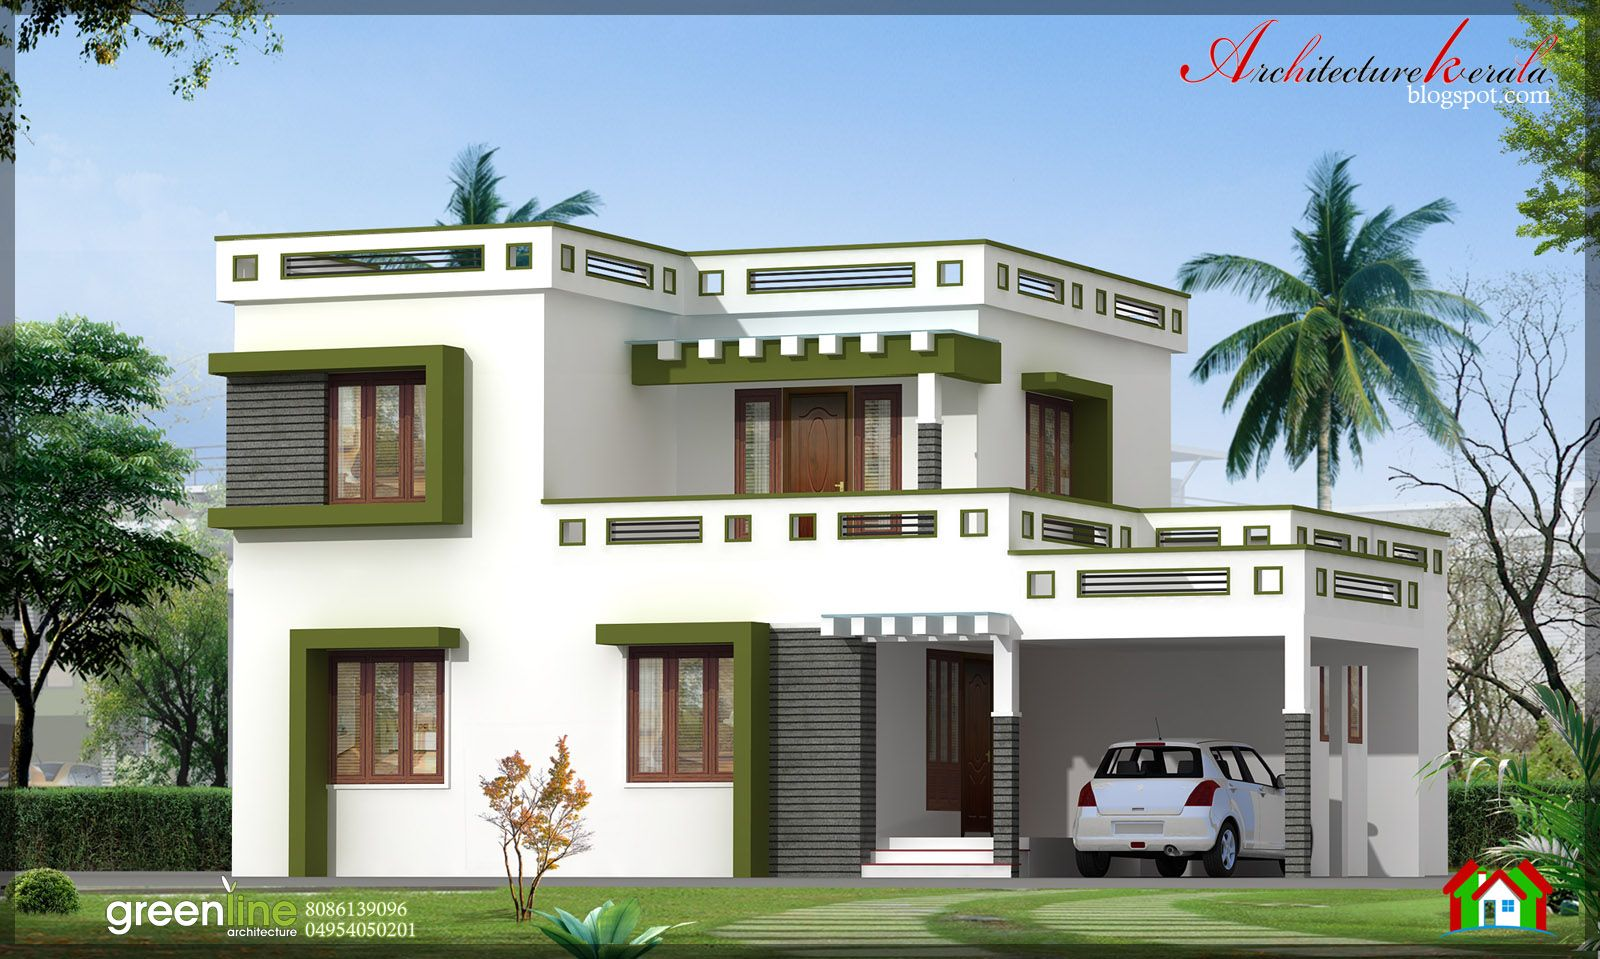 Kerala Home Designs Houses, Modern Square House Design 158 Sq M .